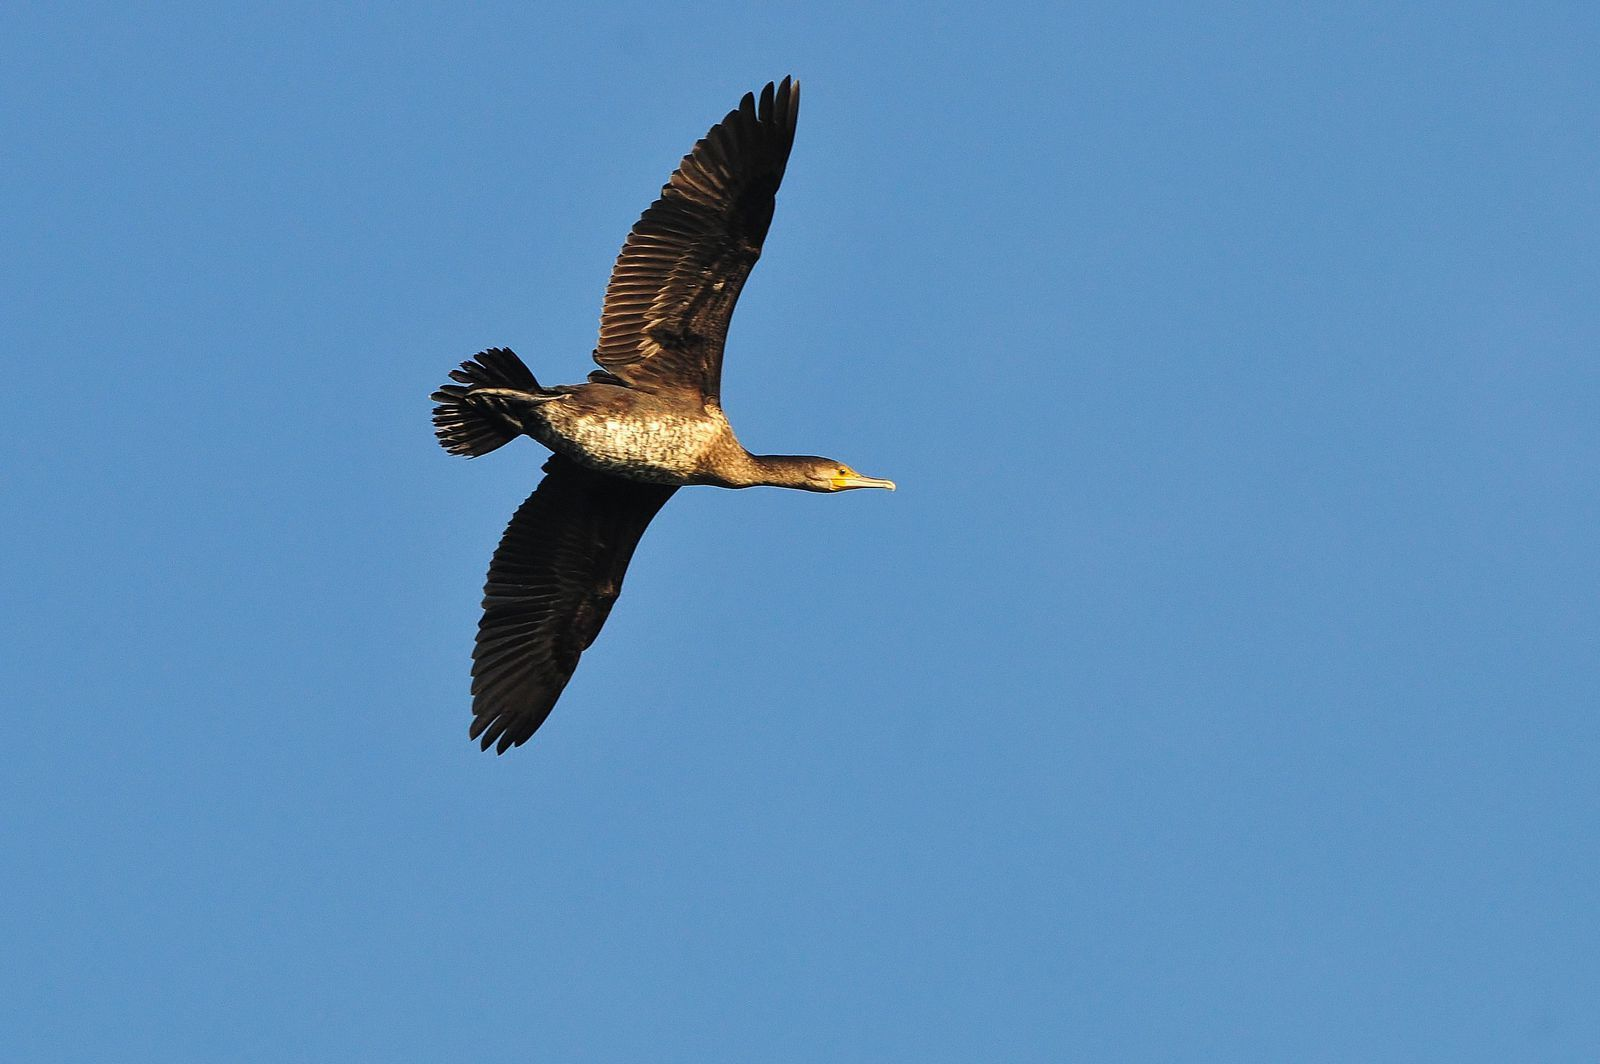 Grand cormoran (Phalacrocorax carbo).